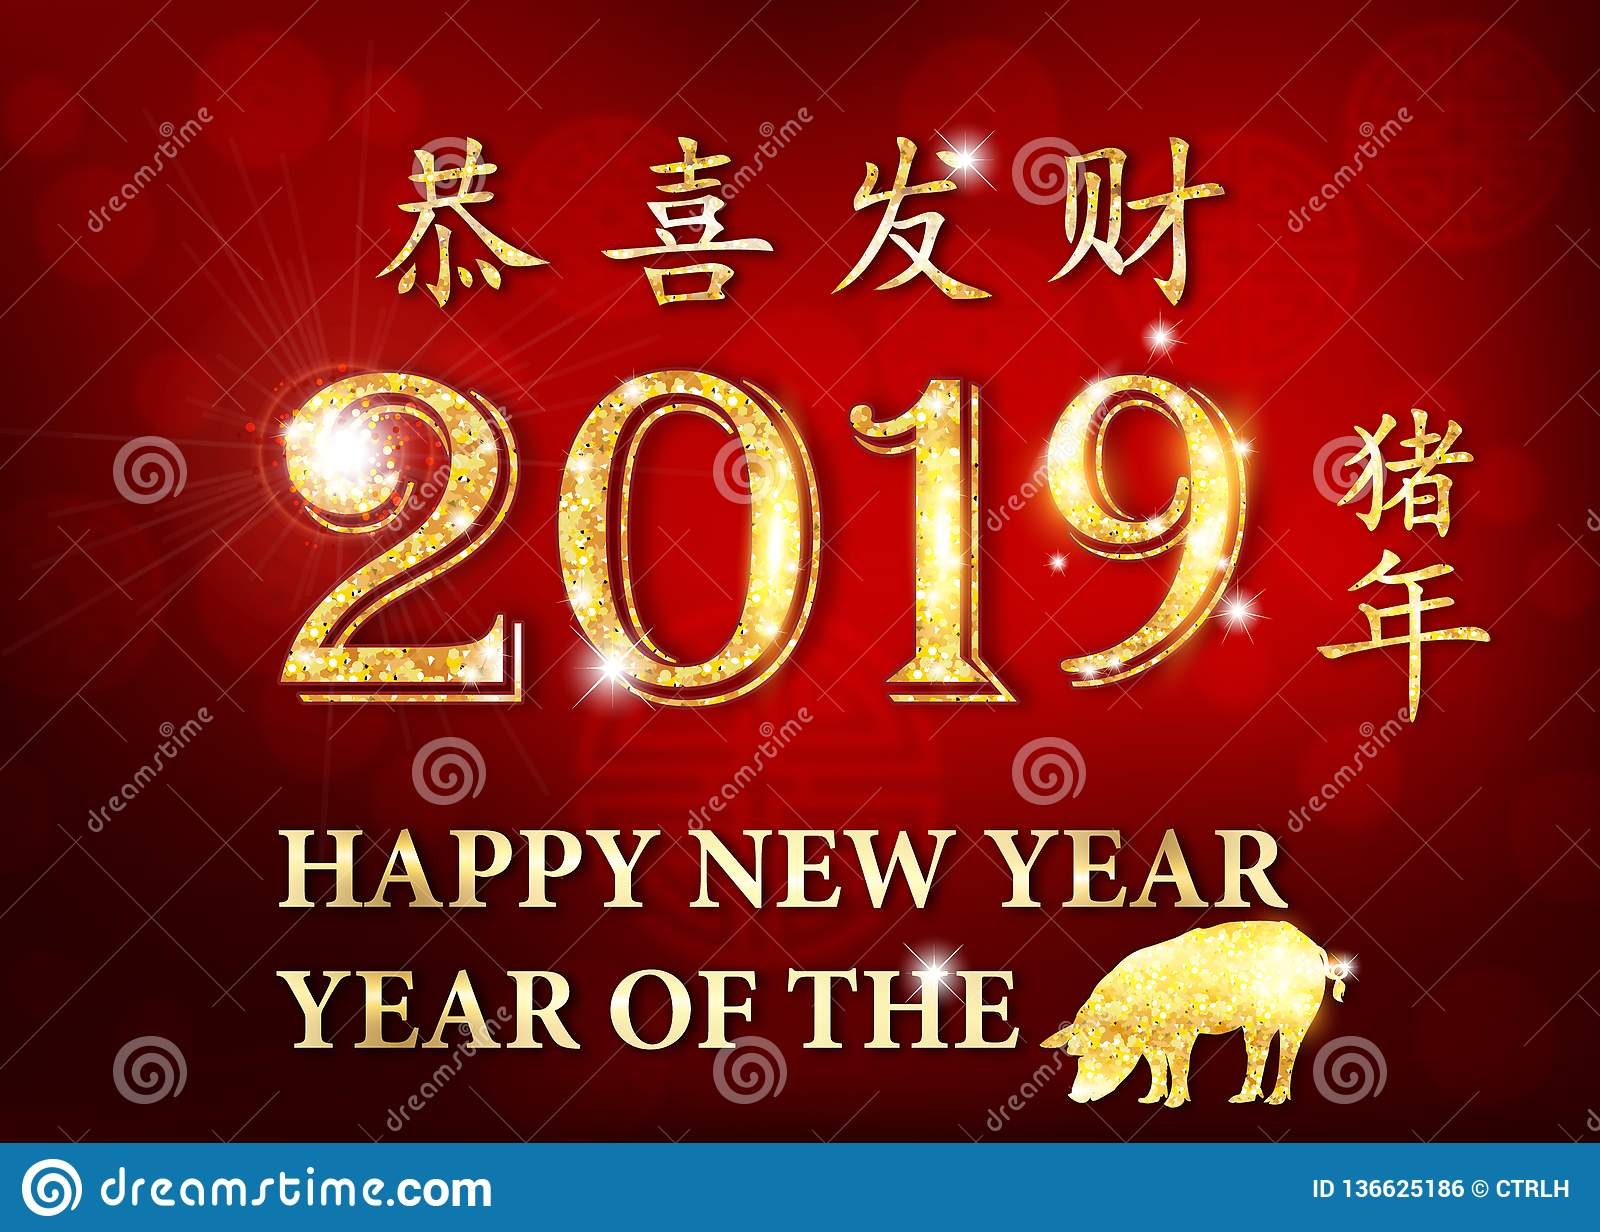 Happy Chinese New Year Of The Boar 2019 Red Greeting Card With Golden Text Stock Photo Image Of Year Greetings 136625186